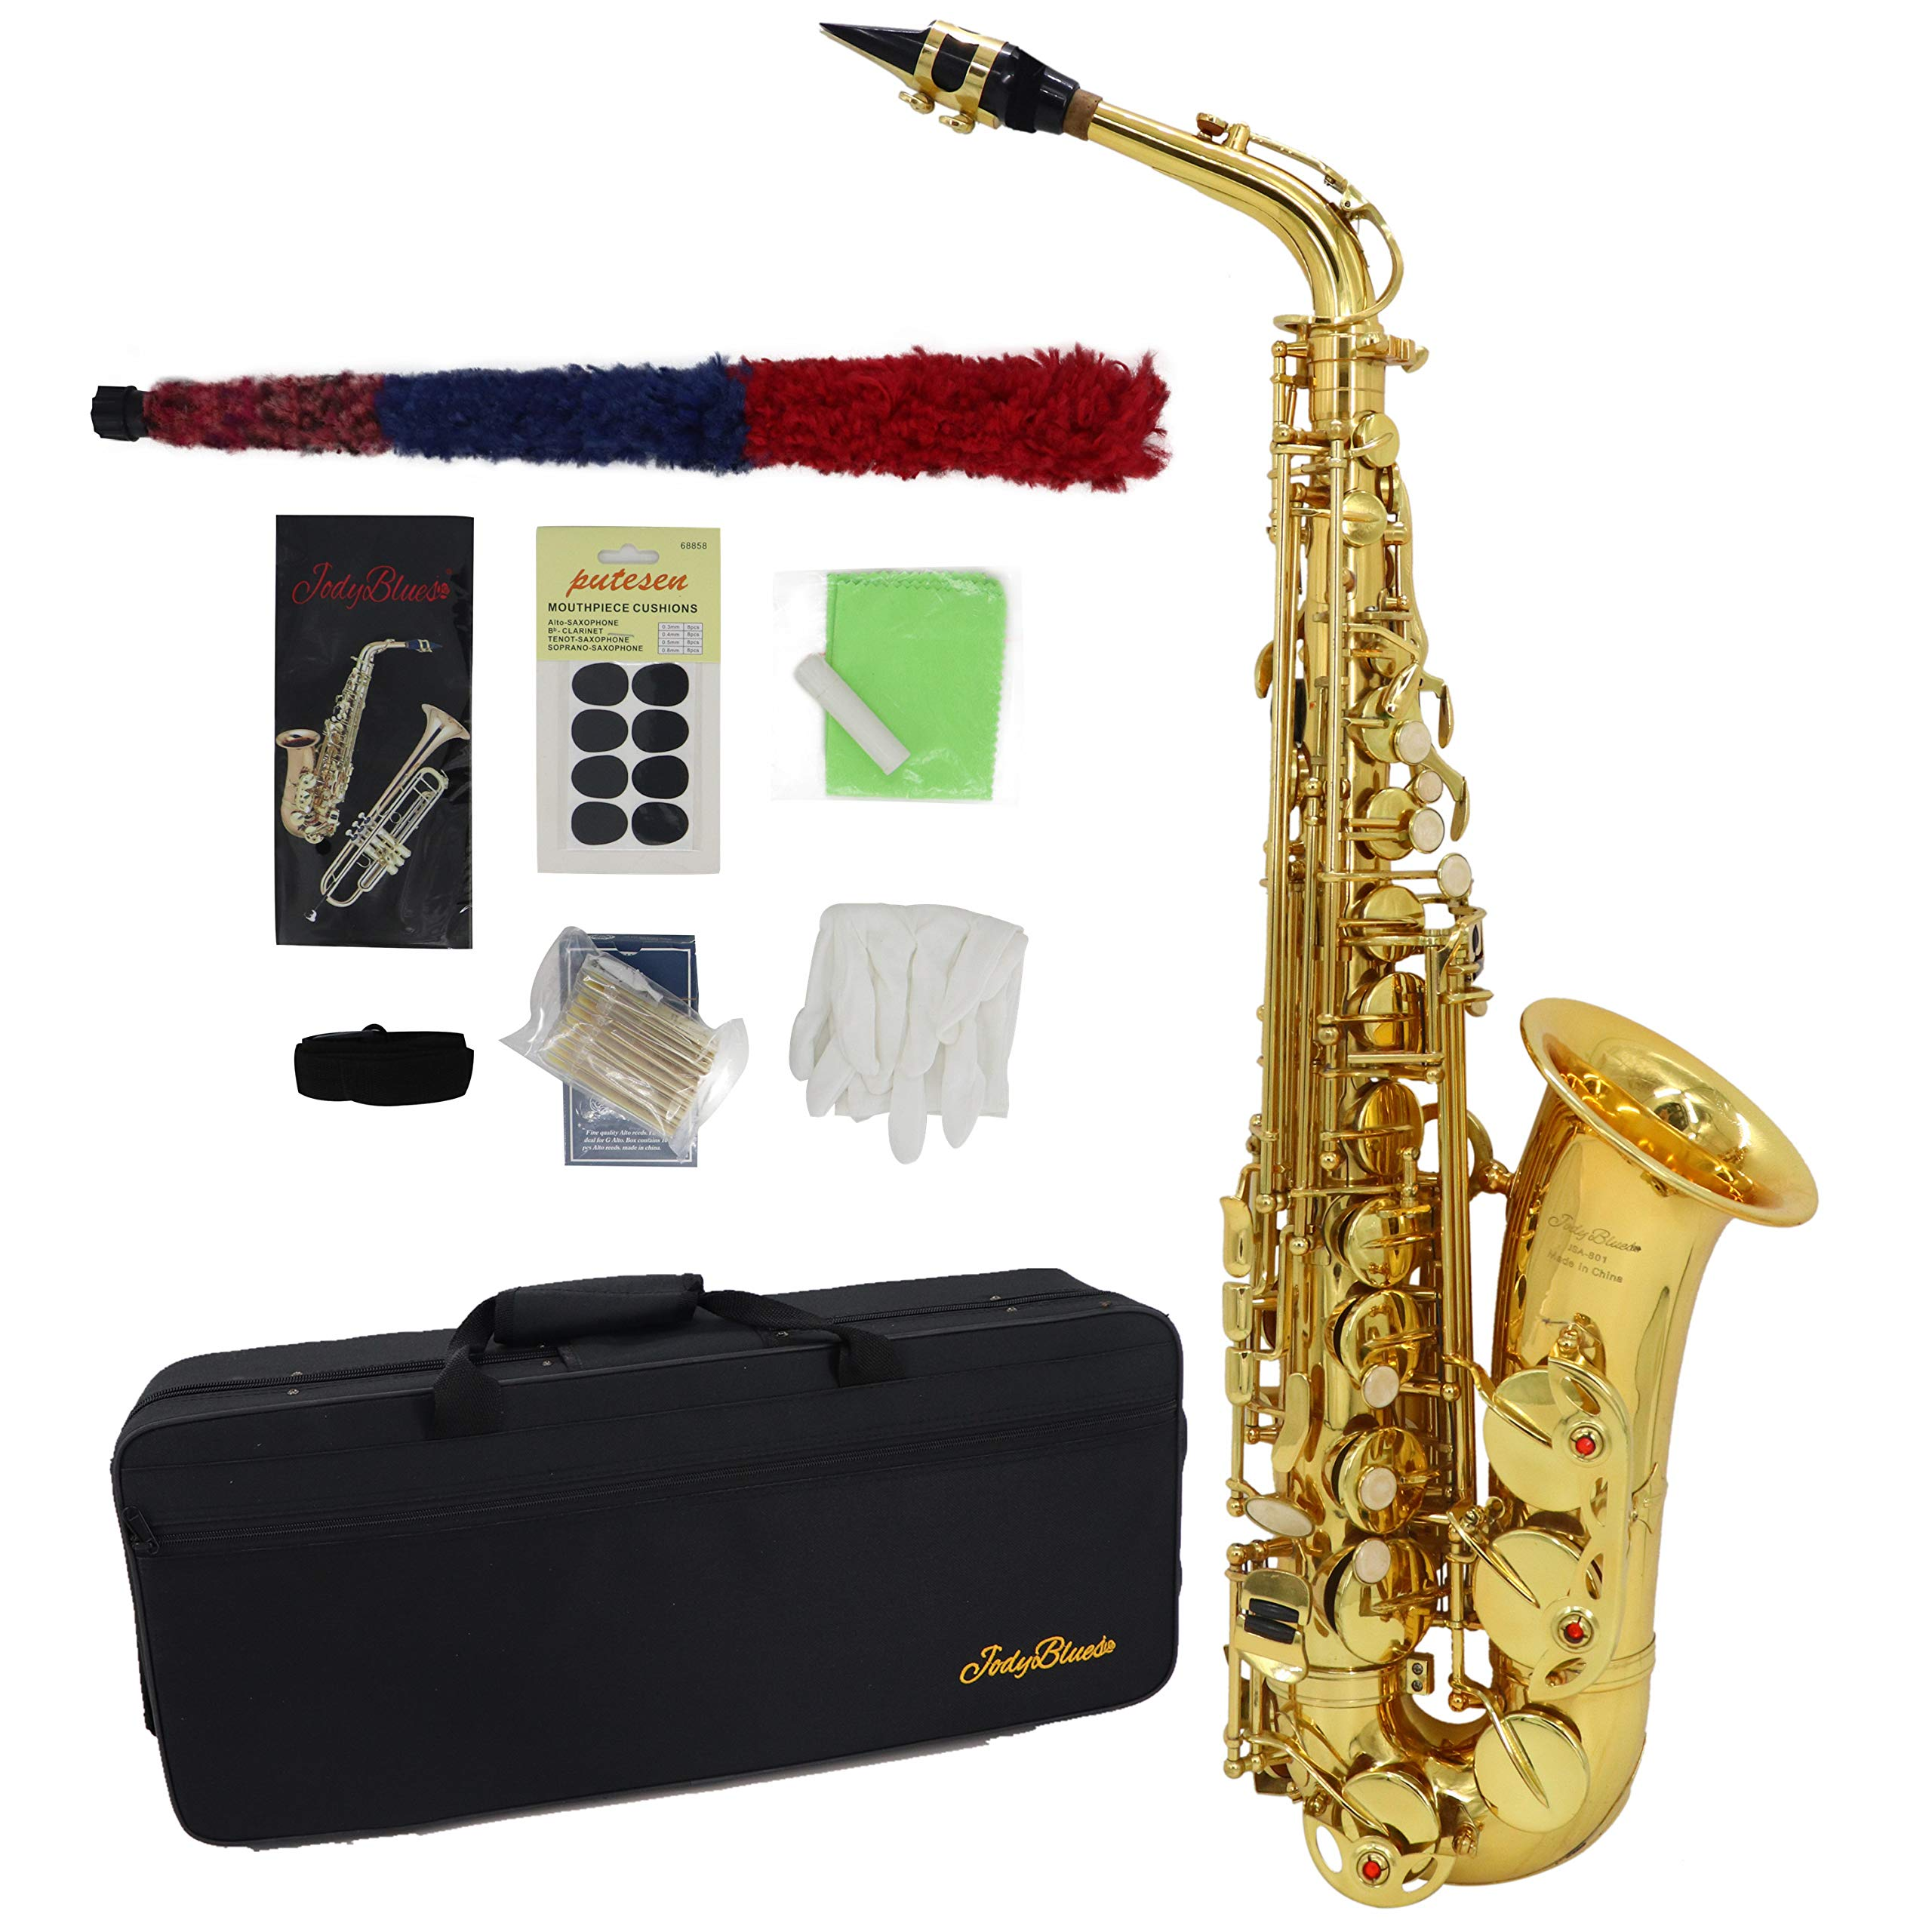 Alto Saxophone Jody Blues JAS-801 Gold Lacquer E Flat Beginner Student Sax with Tuner Mouthpiece Reeds Cloth Rod Gloves Pads Case by Jody Blues